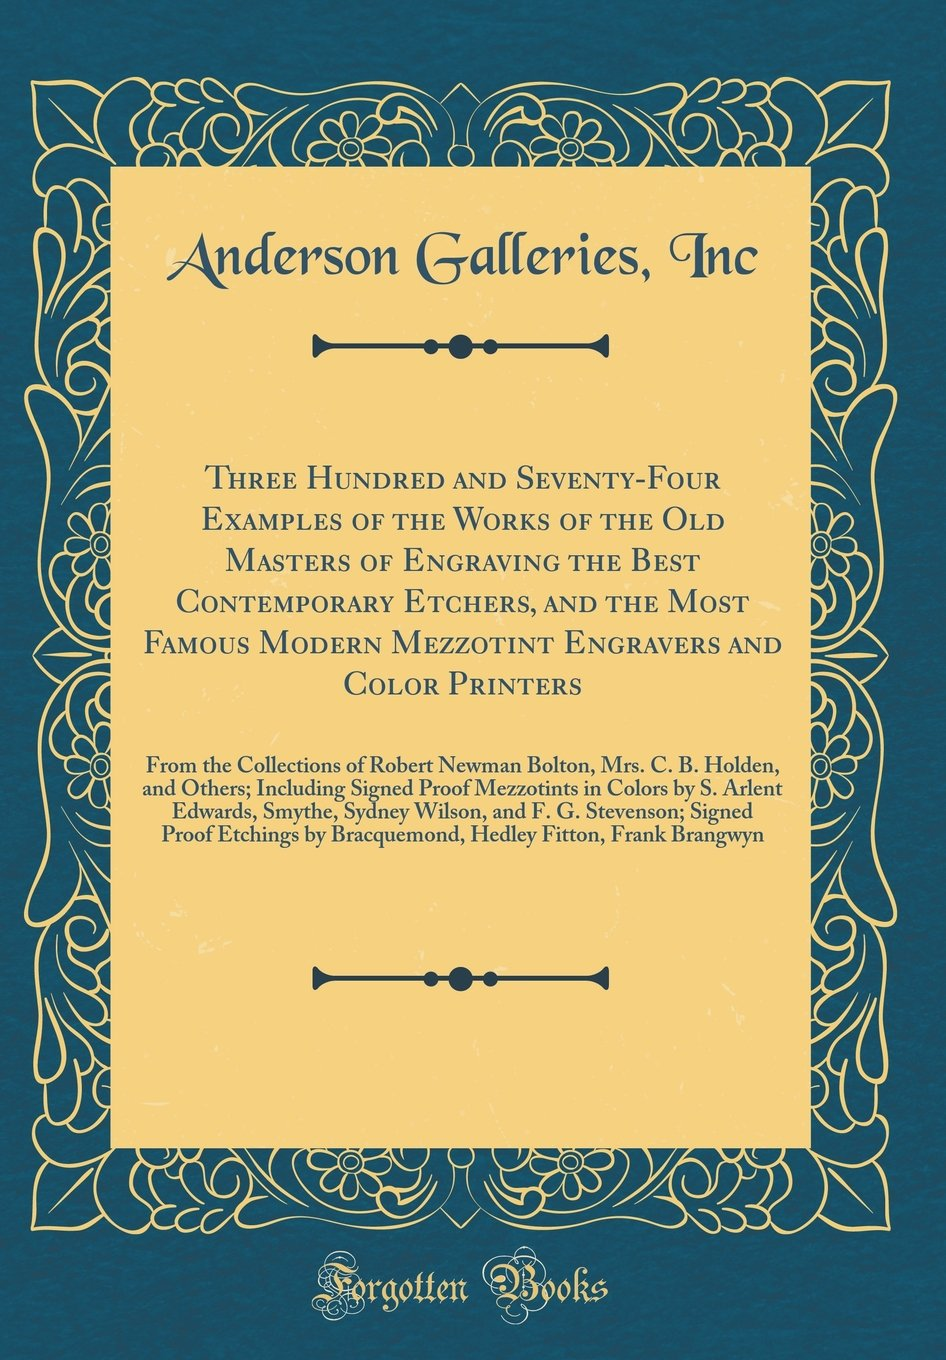 Read Online Three Hundred and Seventy-Four Examples of the Works of the Old Masters of Engraving the Best Contemporary Etchers, and the Most Famous Modern Newman Bolton, Mrs. C. B. Holden, and Oth pdf